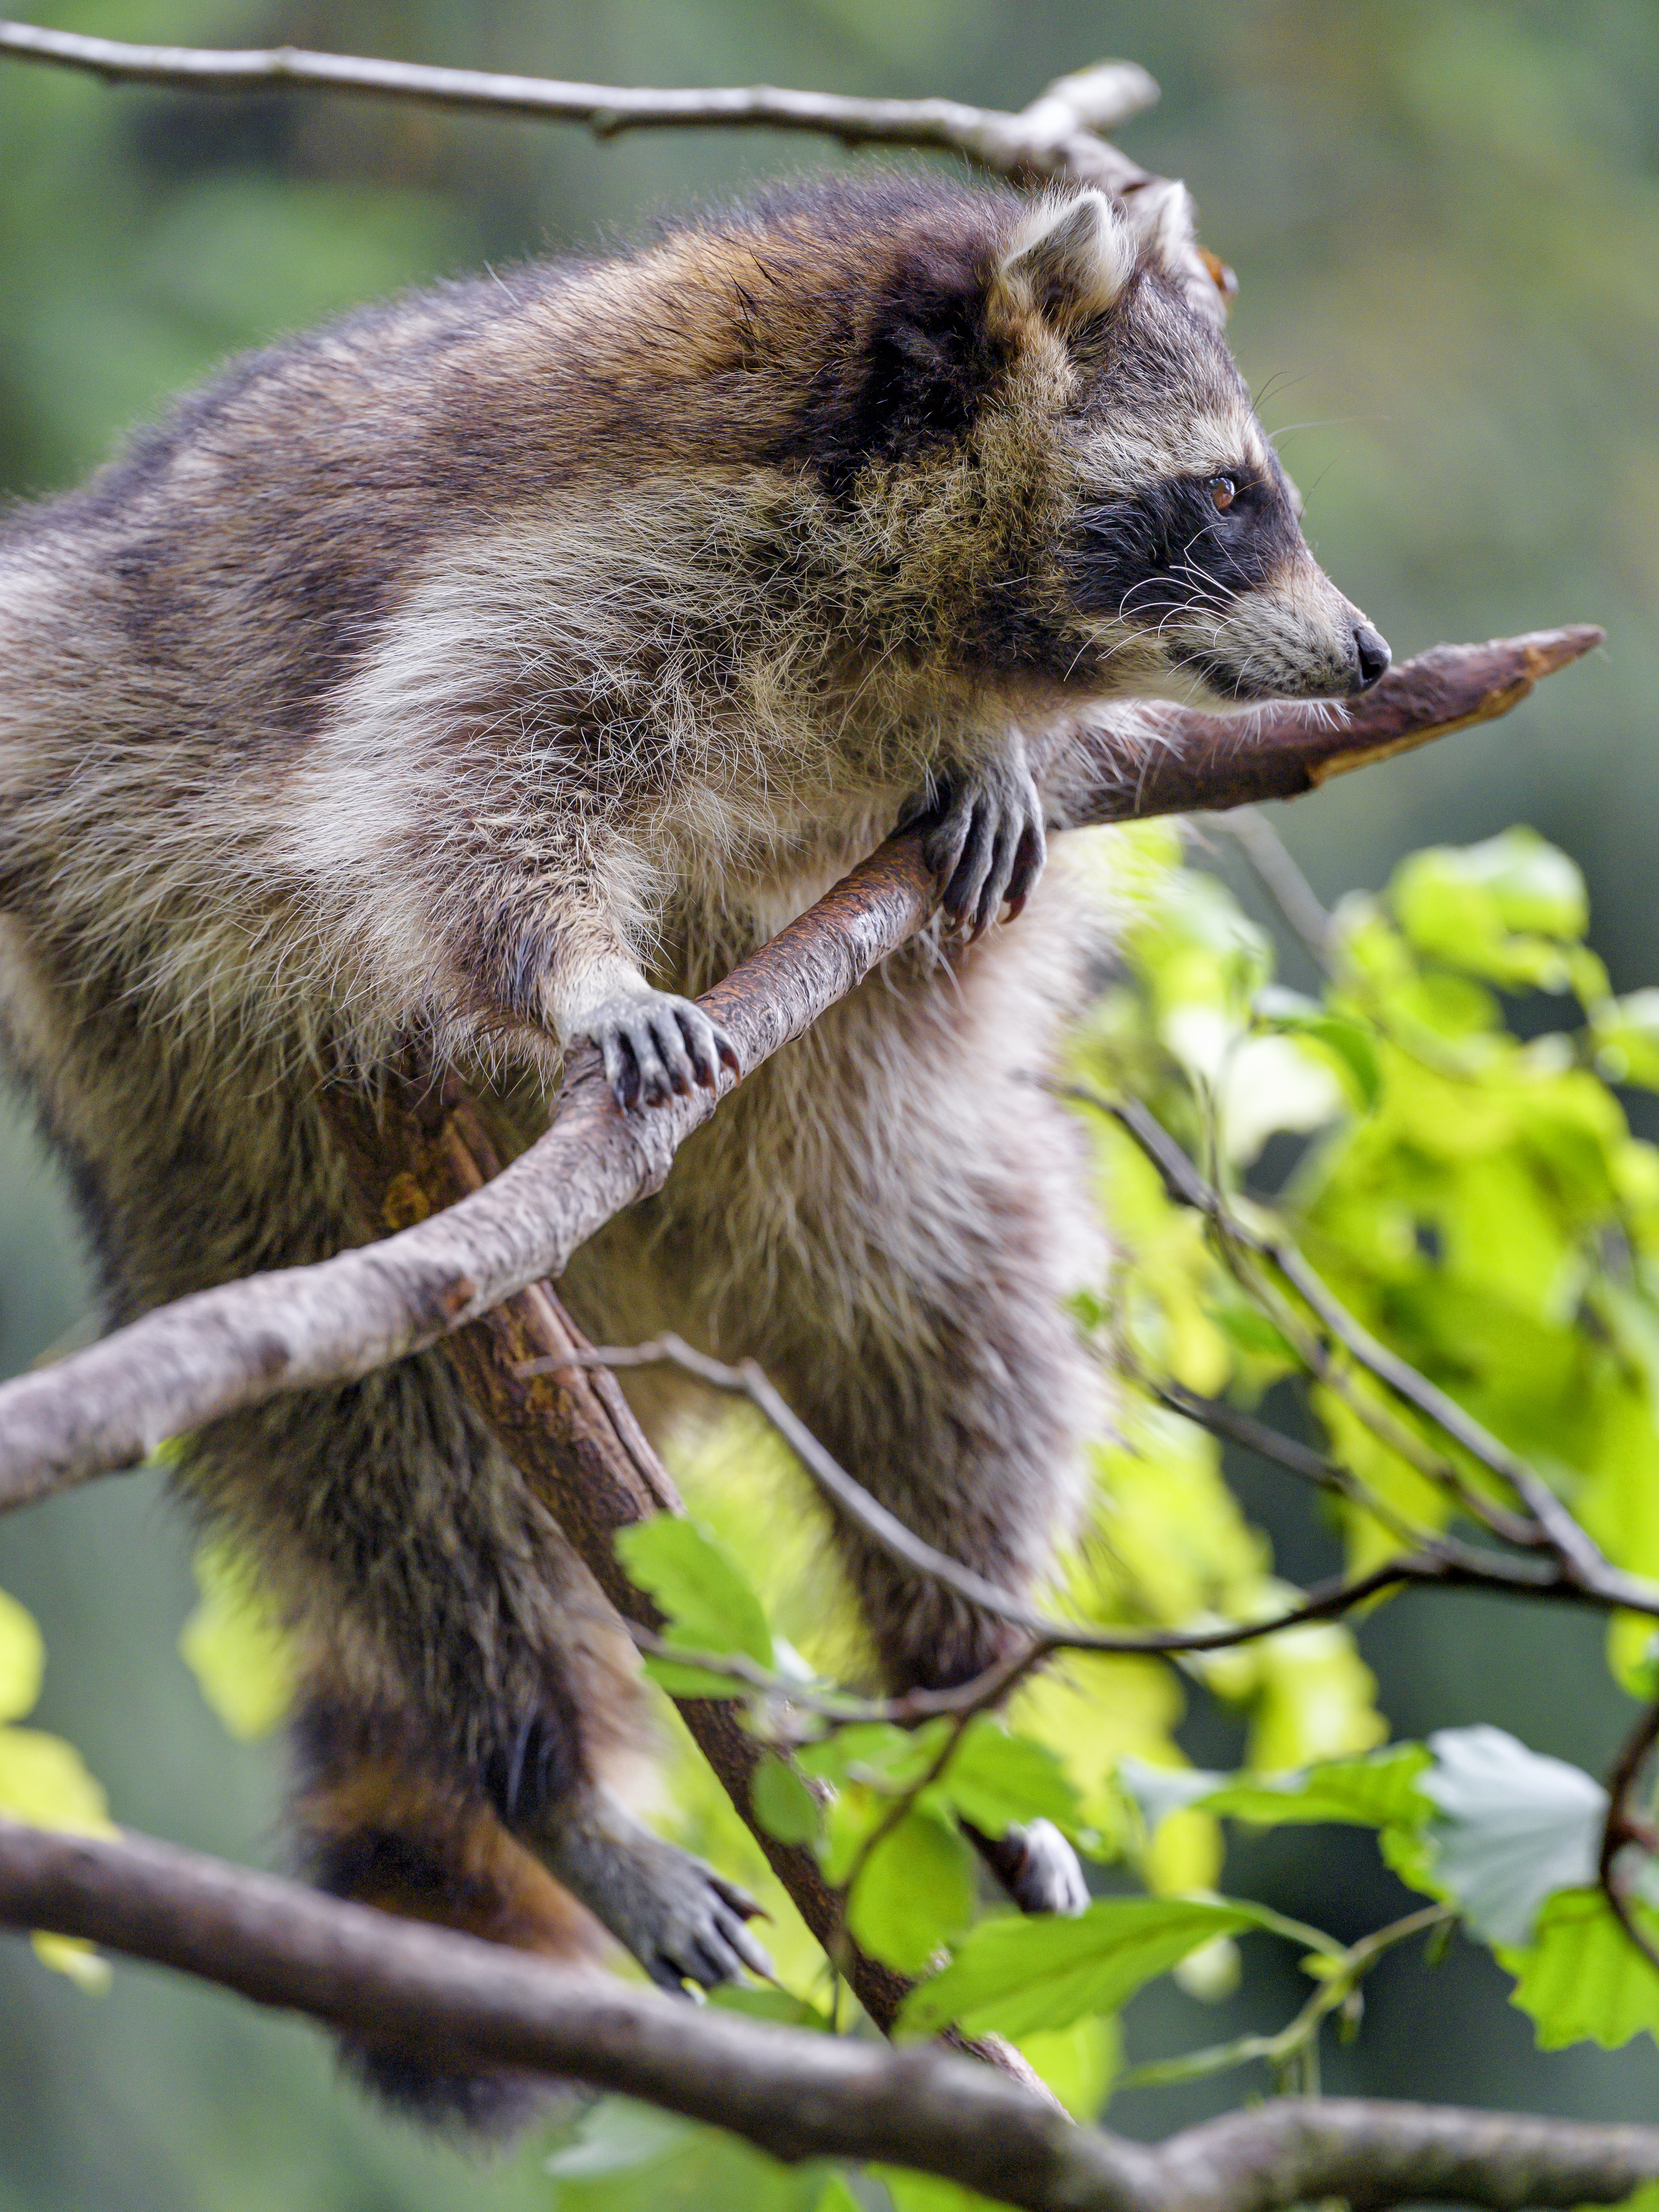 78385 download wallpaper Animals, Raccoon, Animal, Fluffy, Branch screensavers and pictures for free